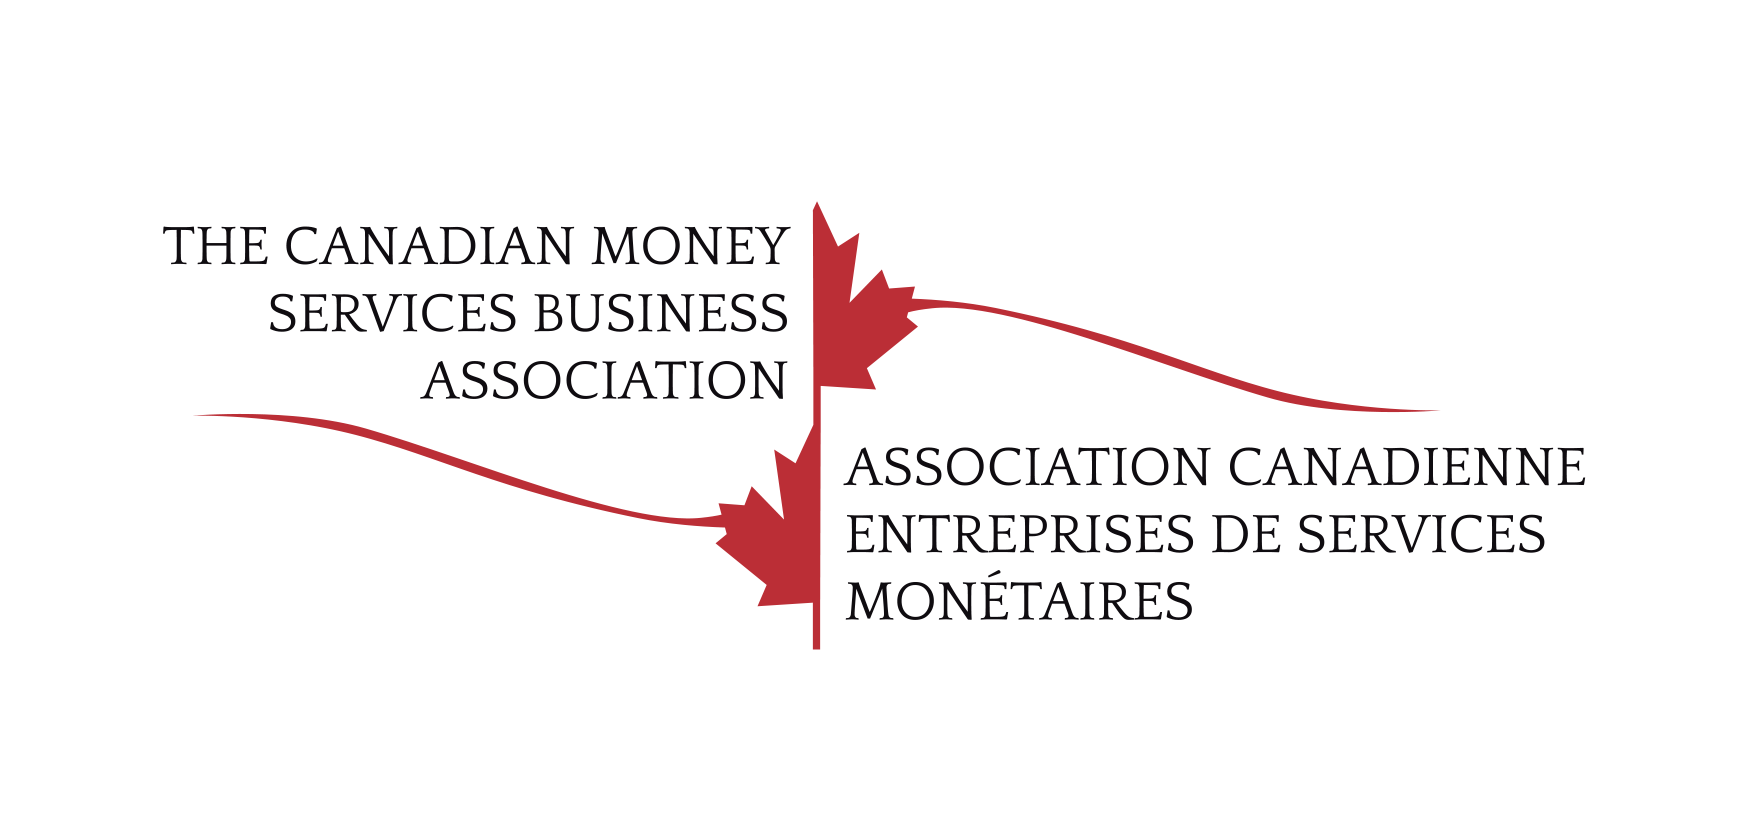 Canadian Money Service Business Association Announces the Letter Writing Campaign in Support of Fair Access to Banking Services for Its Members